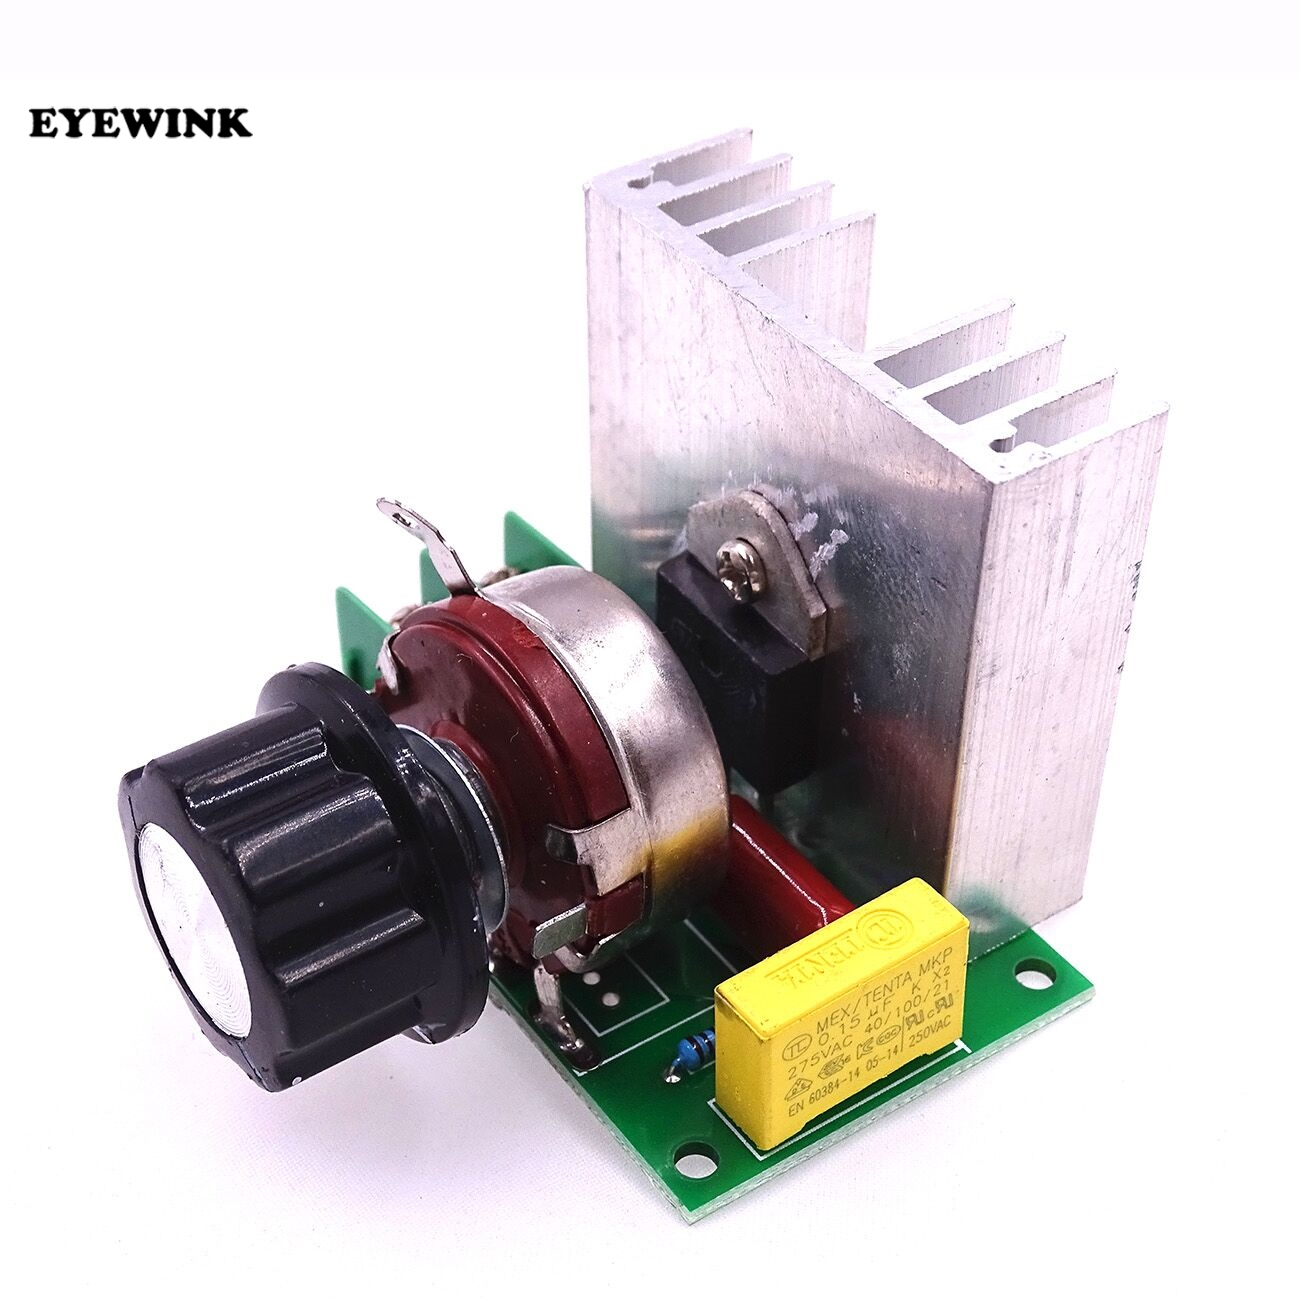 Circuito Com Scr Tic 106 : Buy thyristor power and get free shipping on aliexpress